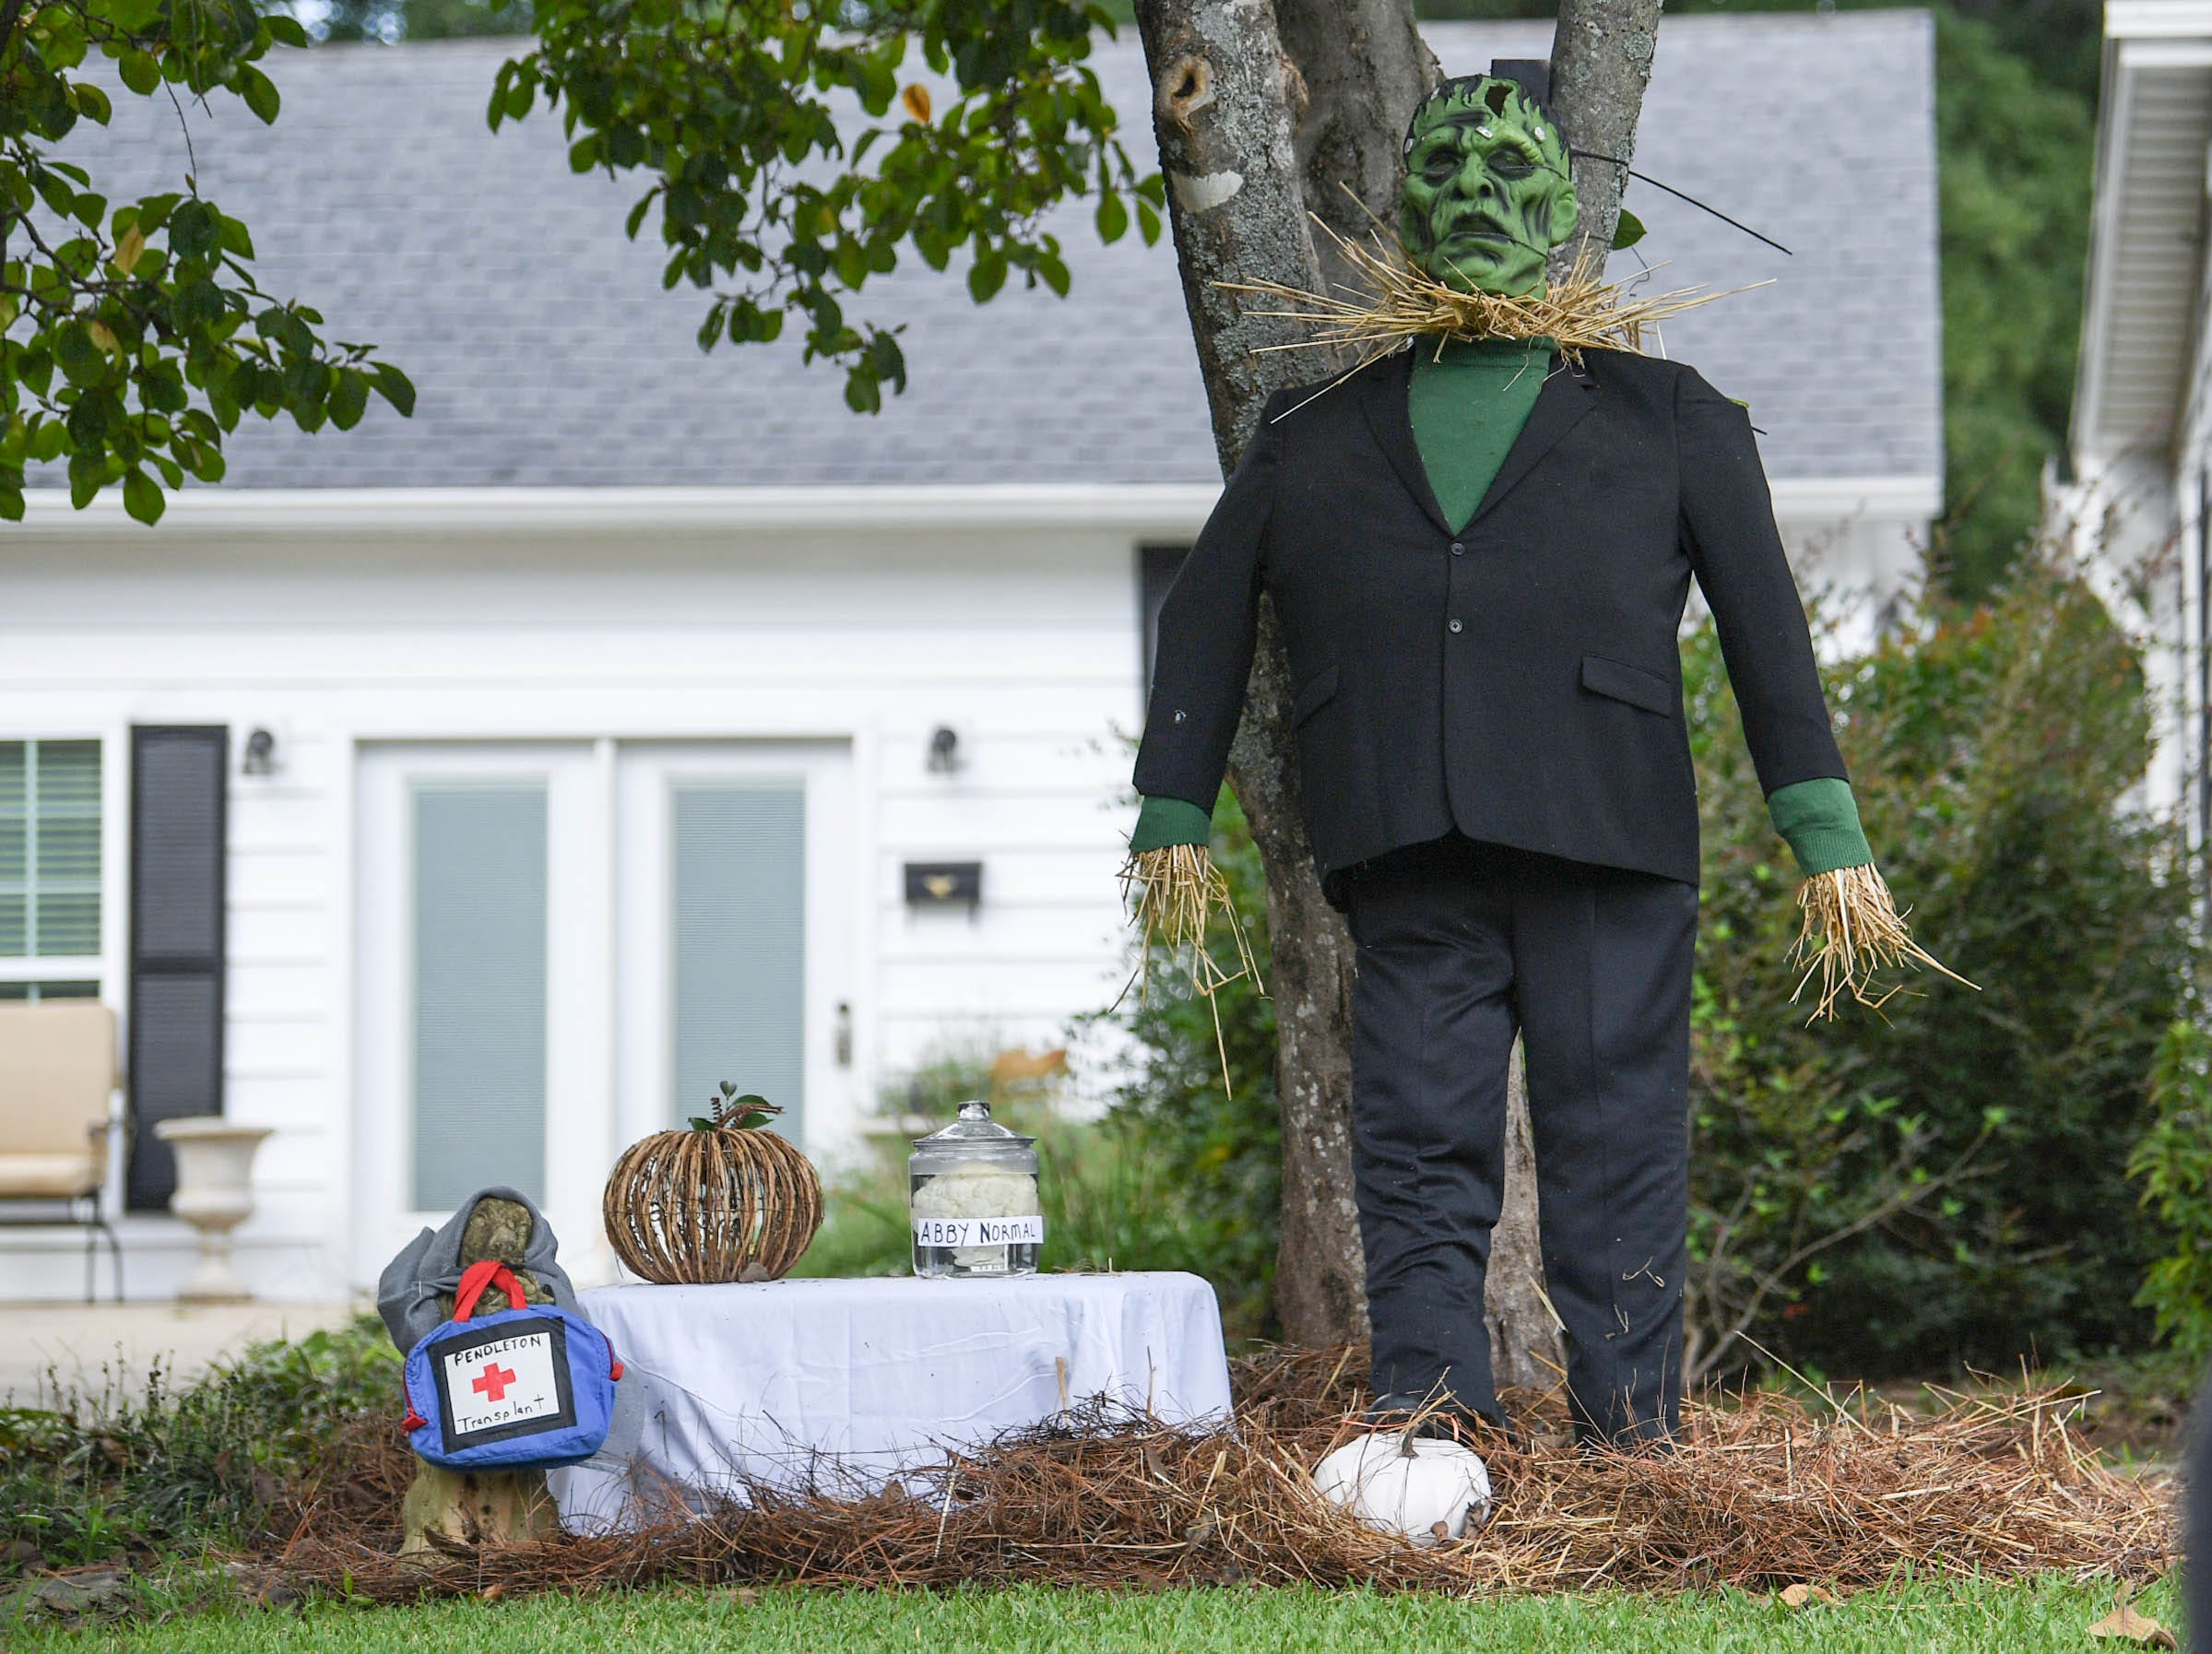 """A Frankenstein with a table with words """"Pendleton transplant"""" is one of many displays in The Pendleton Scarecrow Contest leading up to the 20th Fall Harvest Festival in the village green Saturday, October 6 from 10 a.m. to 5 p.m. The annual contest in Pendleton for businesses, individuals, groups, organizations and churches who create fun not scary Scarecrows. People driving around the downtown square can see different theme scarecrows."""